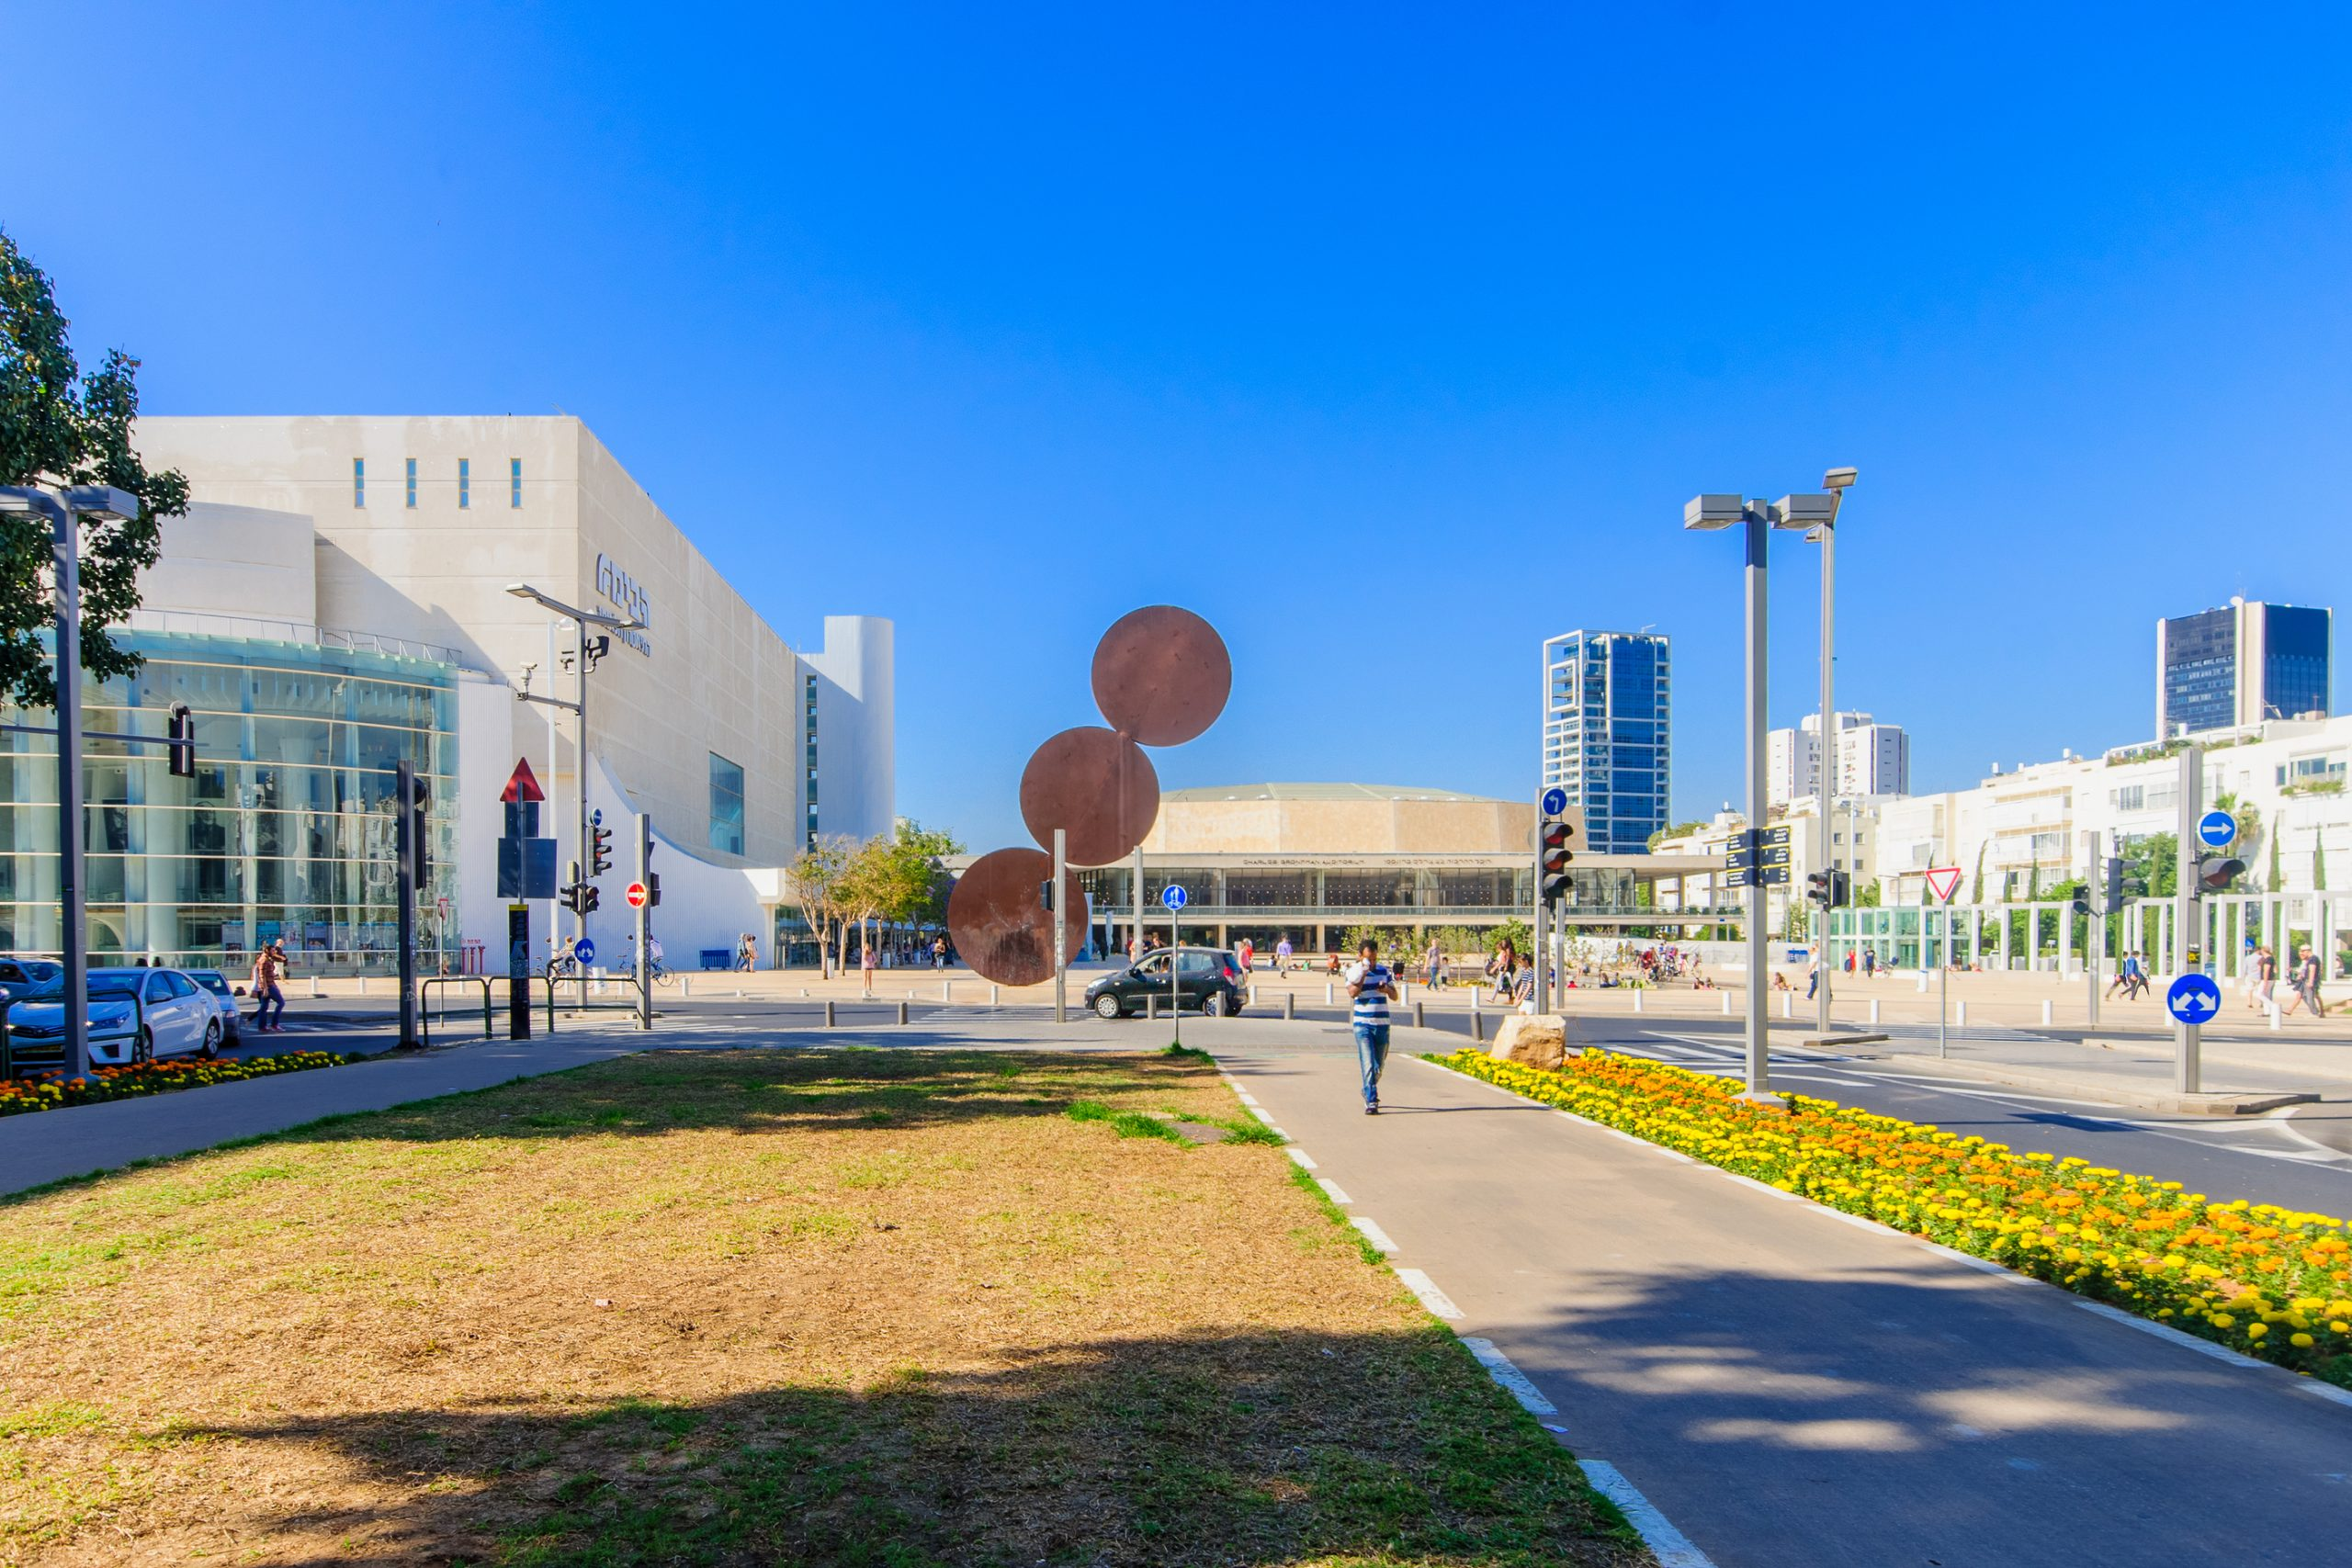 Habima Square - what to see in tel aviv, part of tel aviv sightseeing